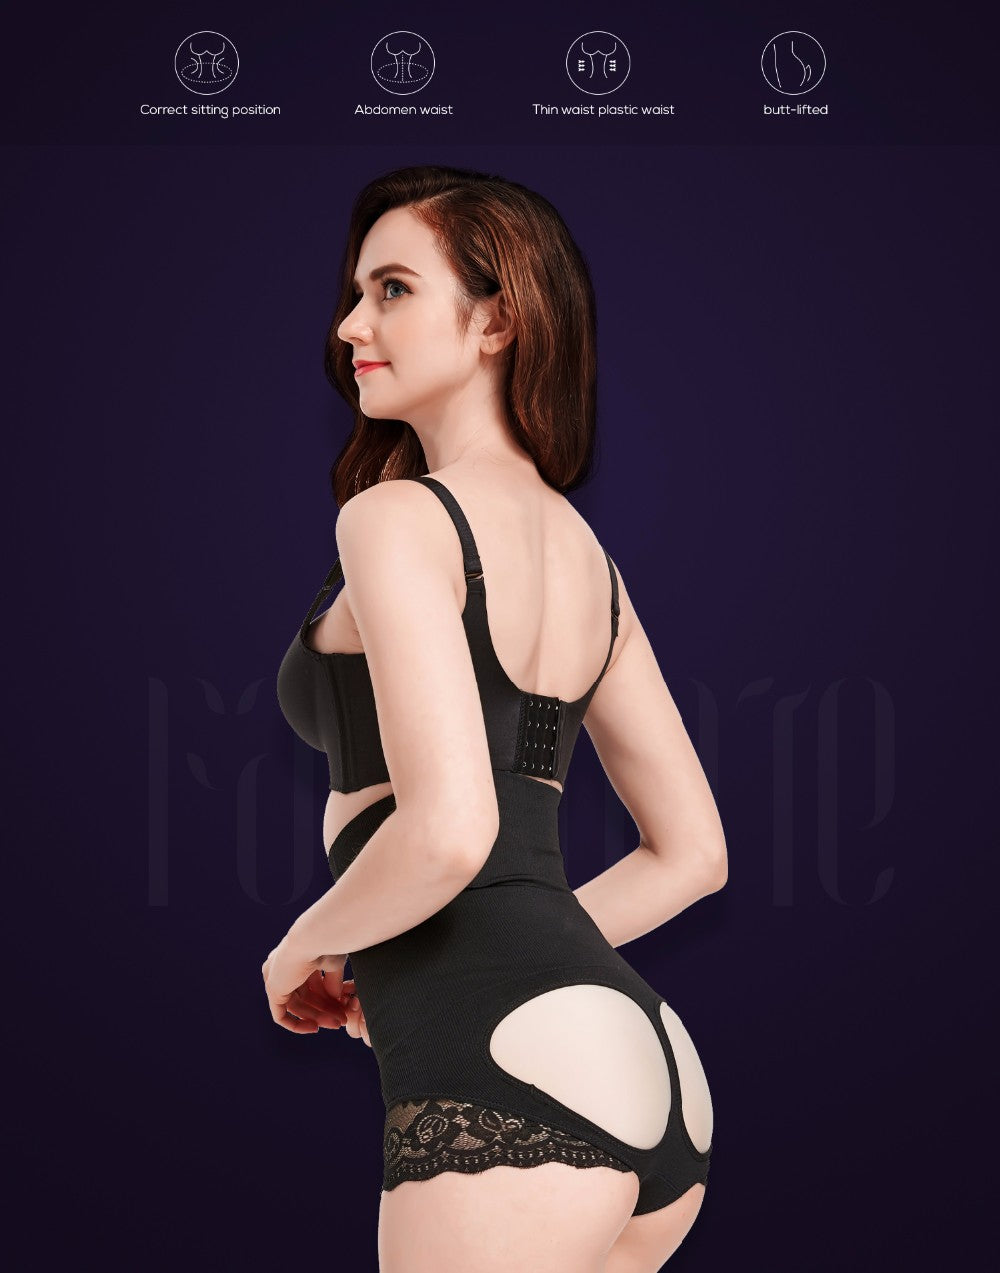 Body Shaper Butt Lifter Panties With High Waist Sim Tummy Control Waist Trainer Corset